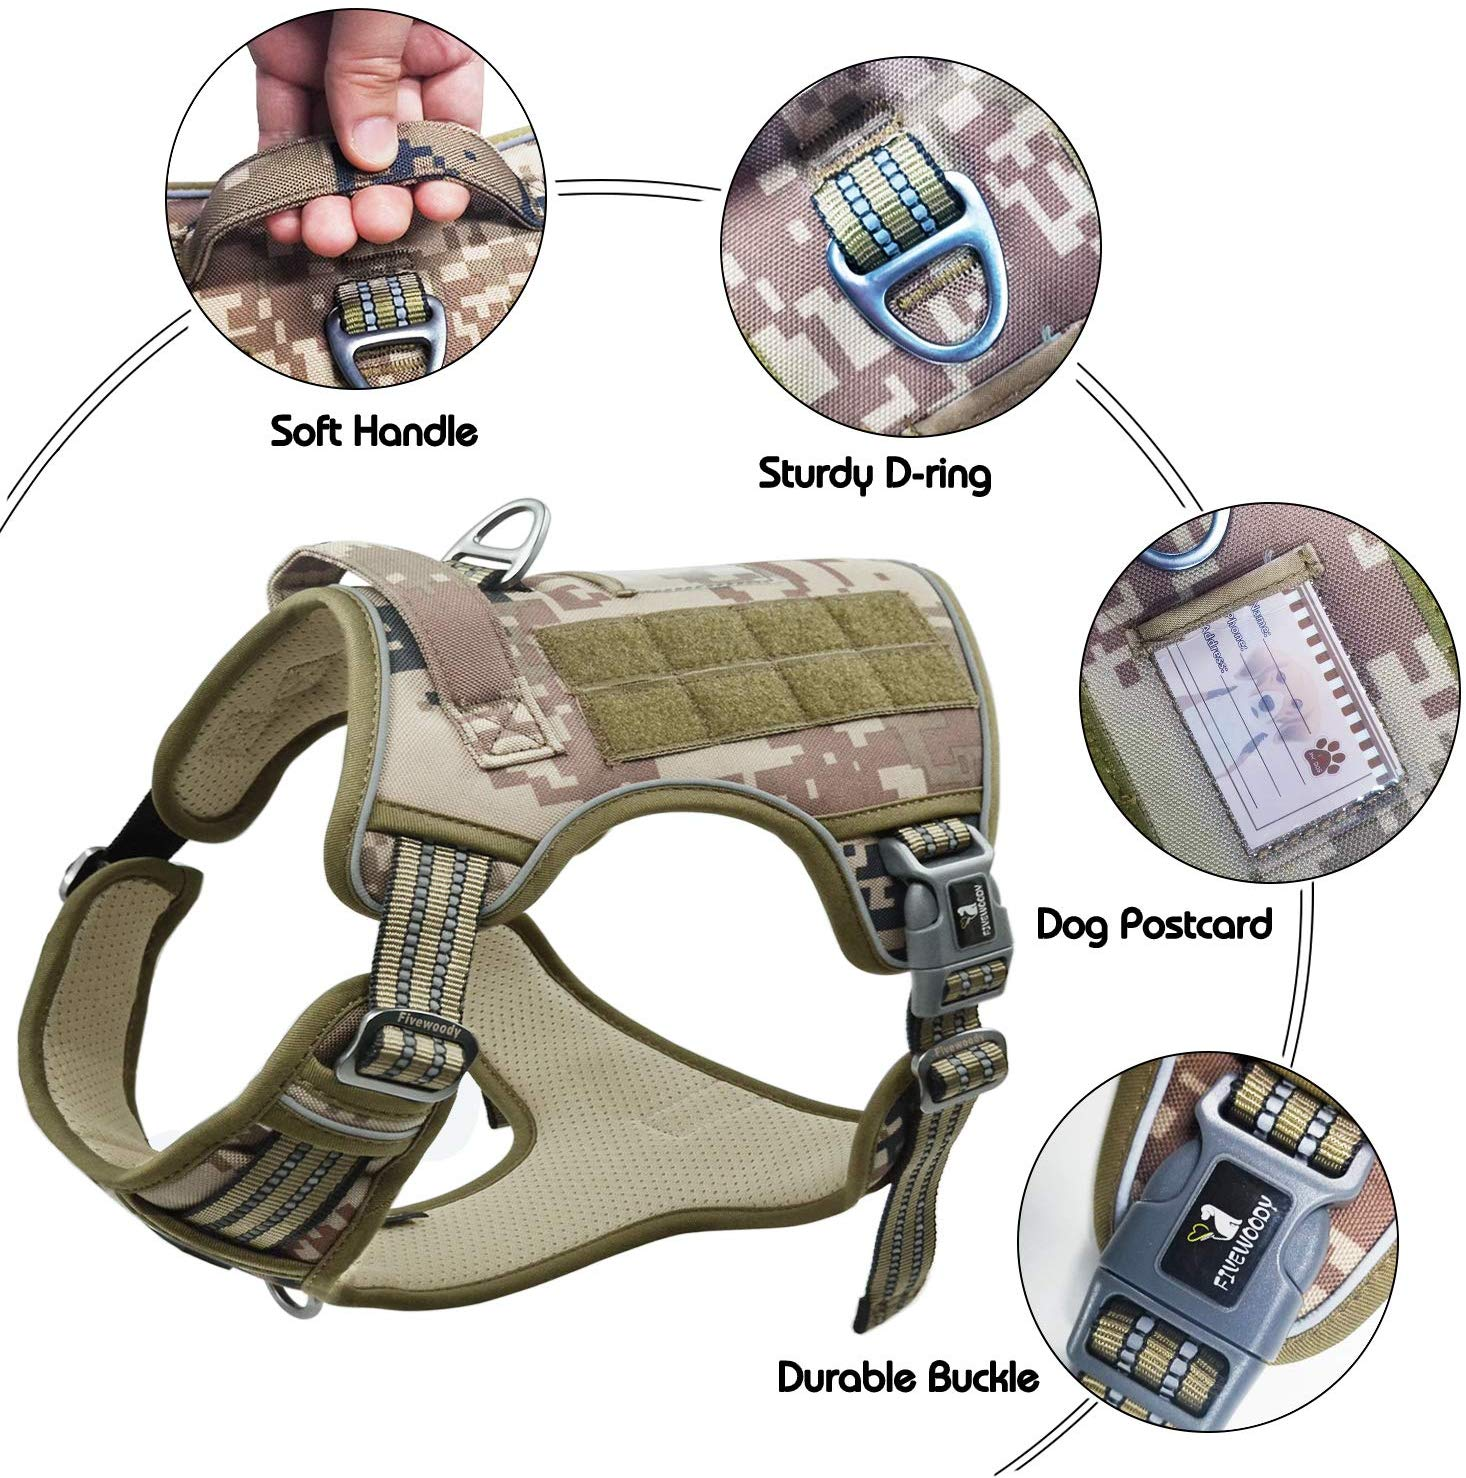 FIVEWOODY Tactical Dog Training Harness No Pulling Front Clip Leash Adhesion Reflective K9 Pet Working Vest Easy Control for Small Medium Large Dogs